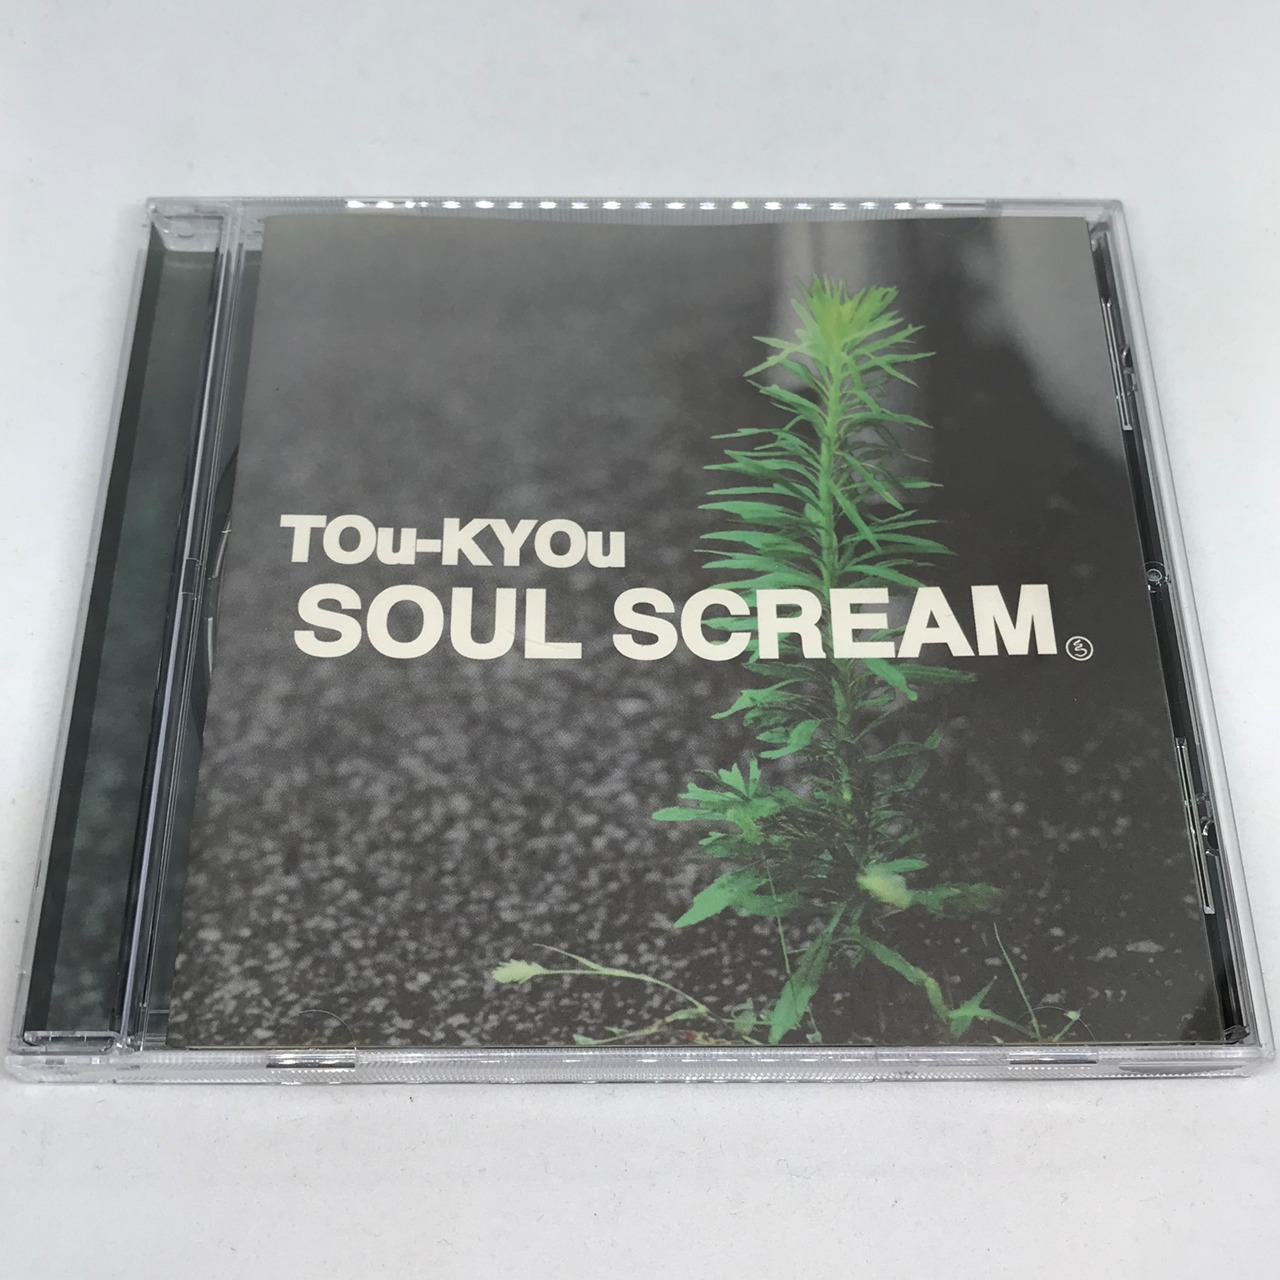 SOUL SCREAM / TOu-KYOu